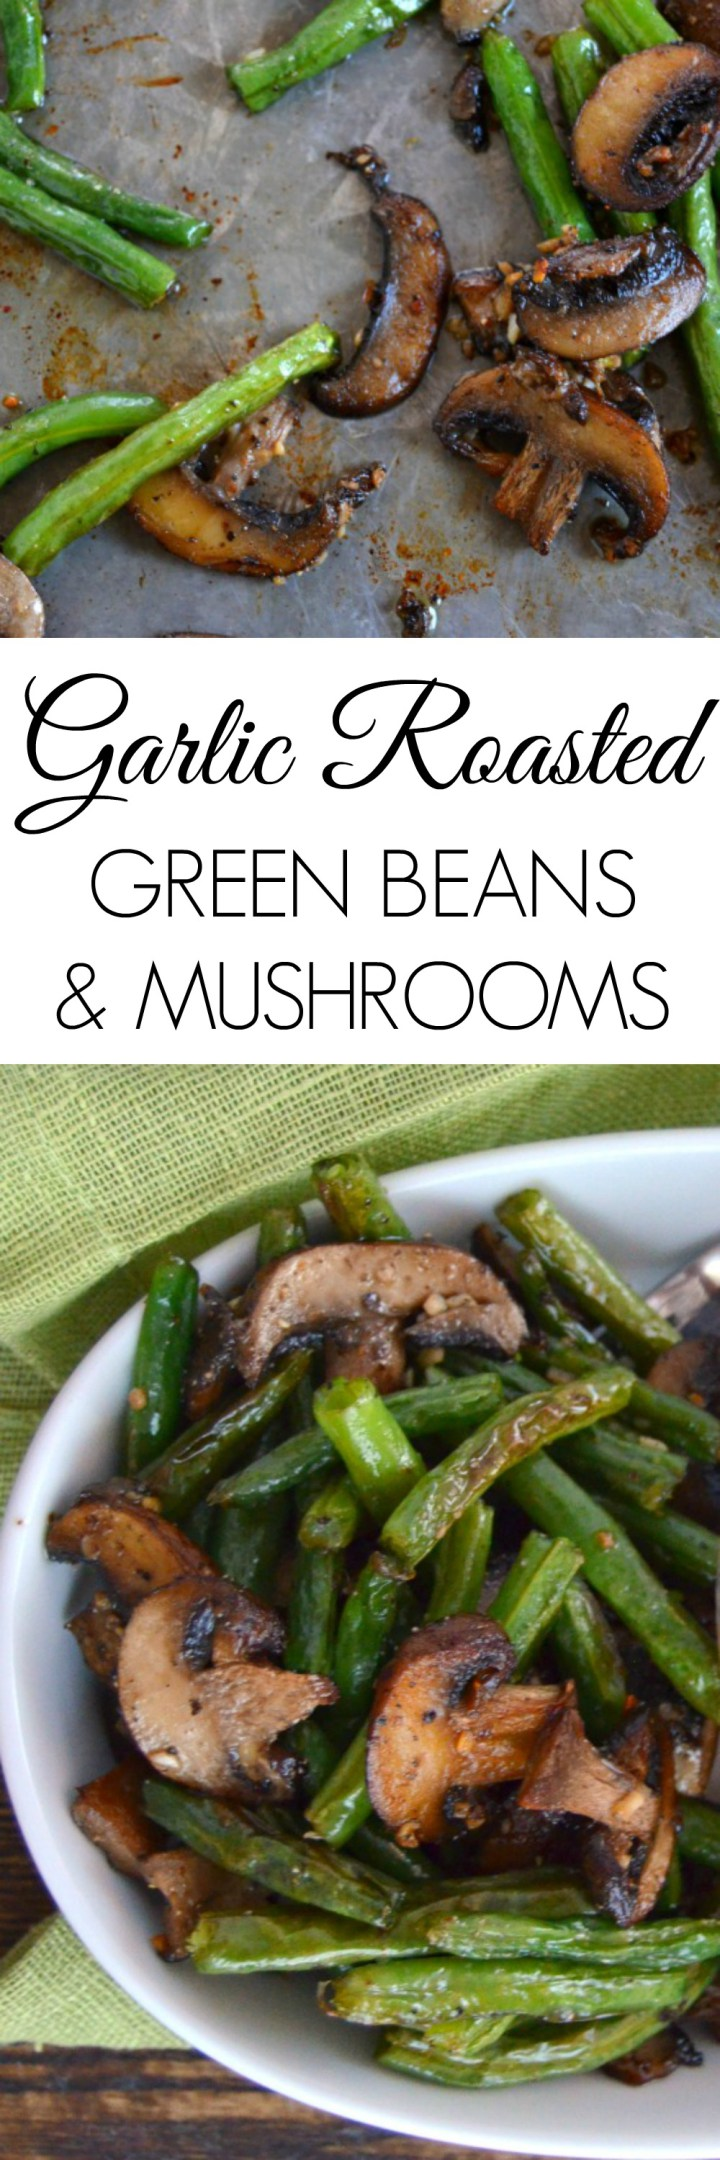 Garlic roasted green beans and mushrooms healthy side